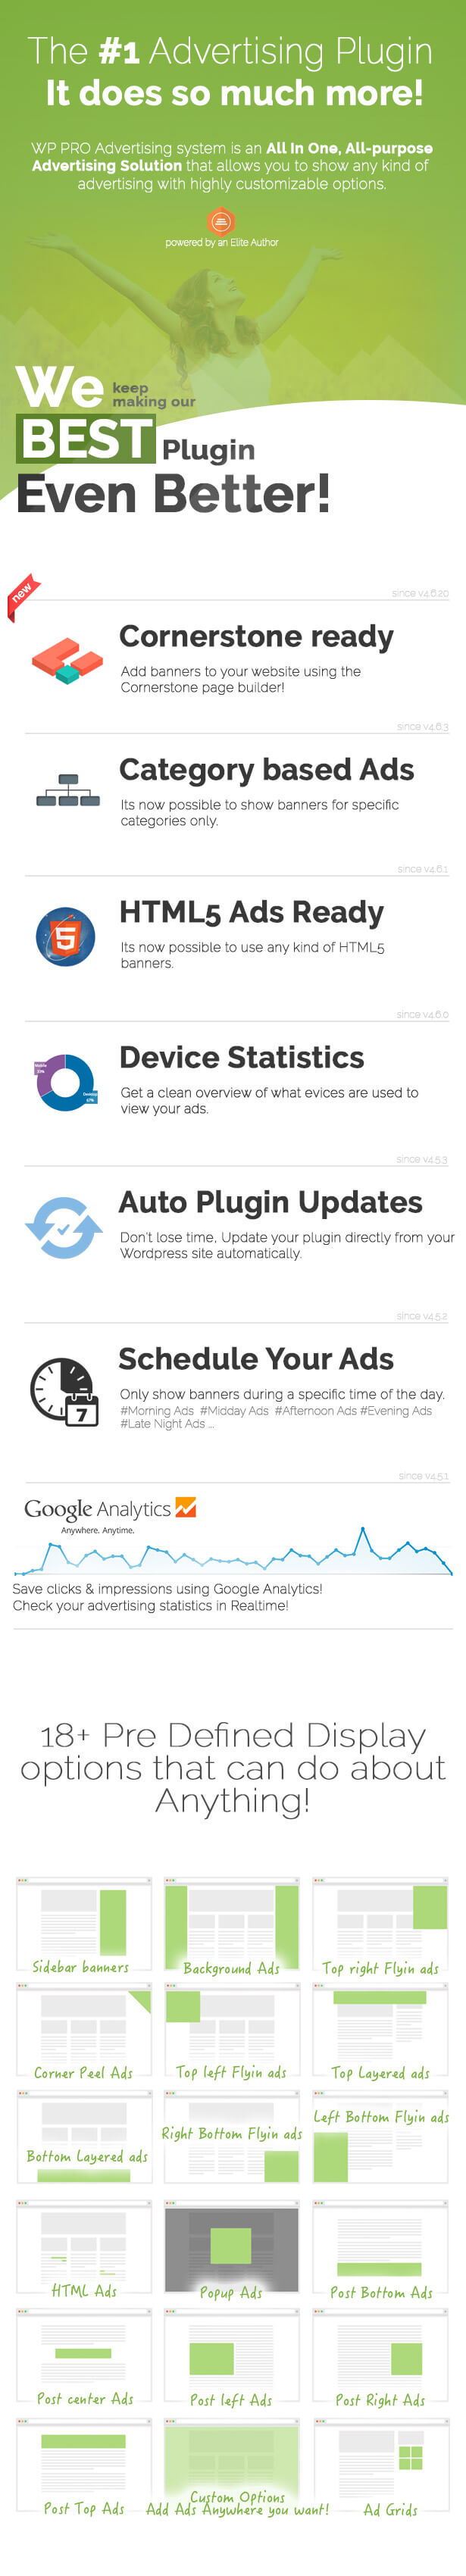 WP PRO Advertising System - All In One Ad Manager Top WordPress Plugins